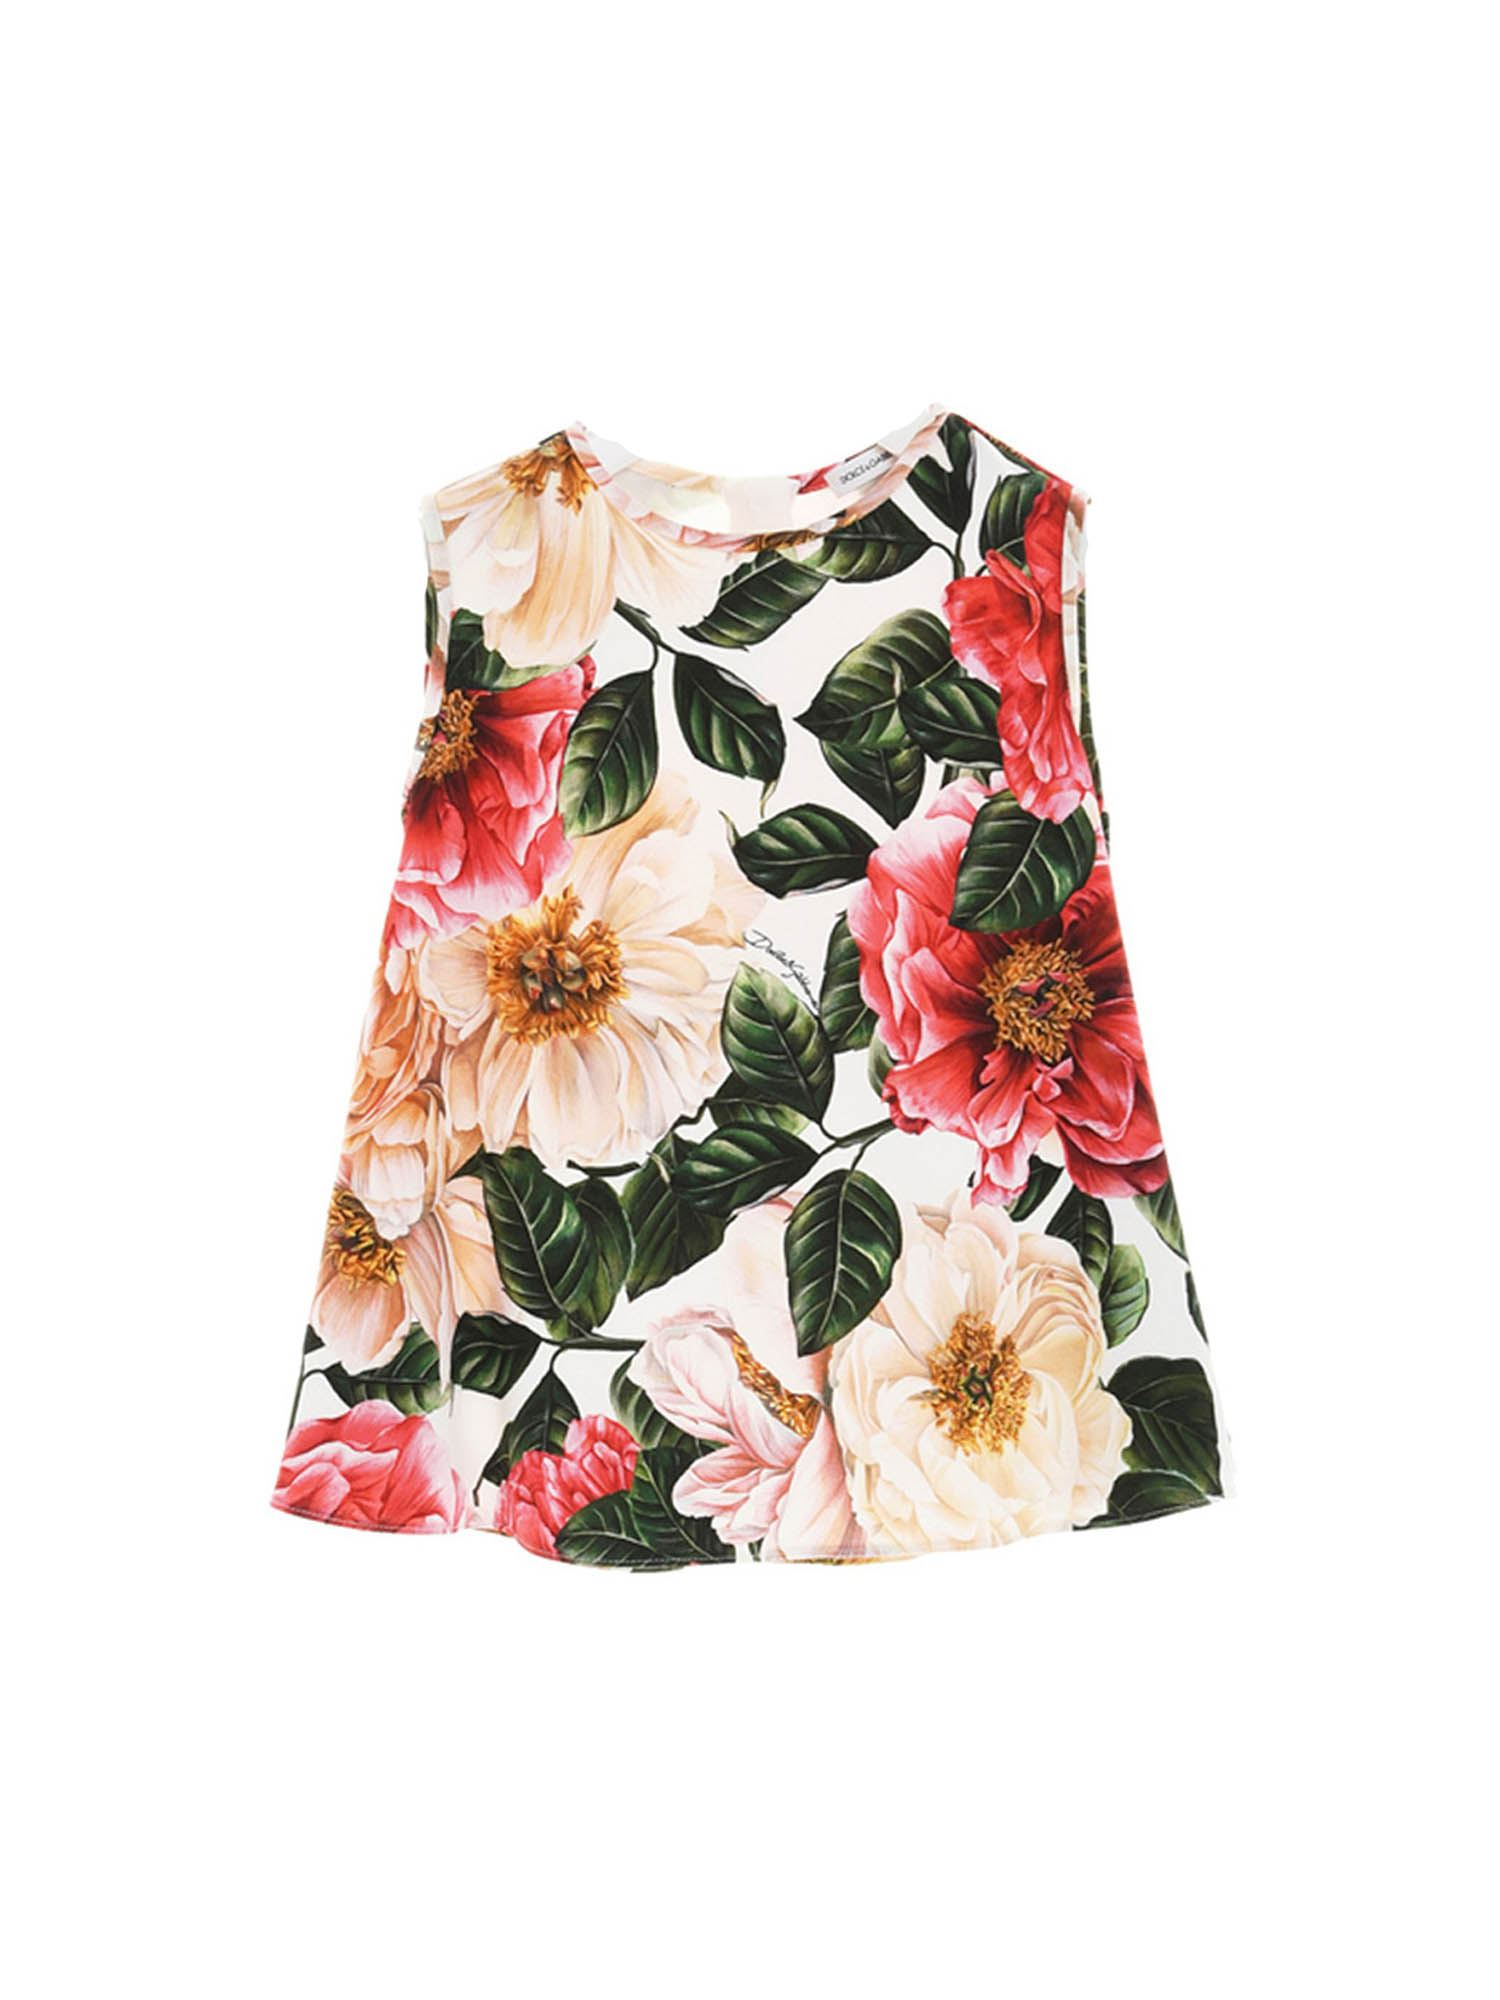 Dolce & Gabbana Jr CAMELLIA PRINT TOP IN MULTICOLOR